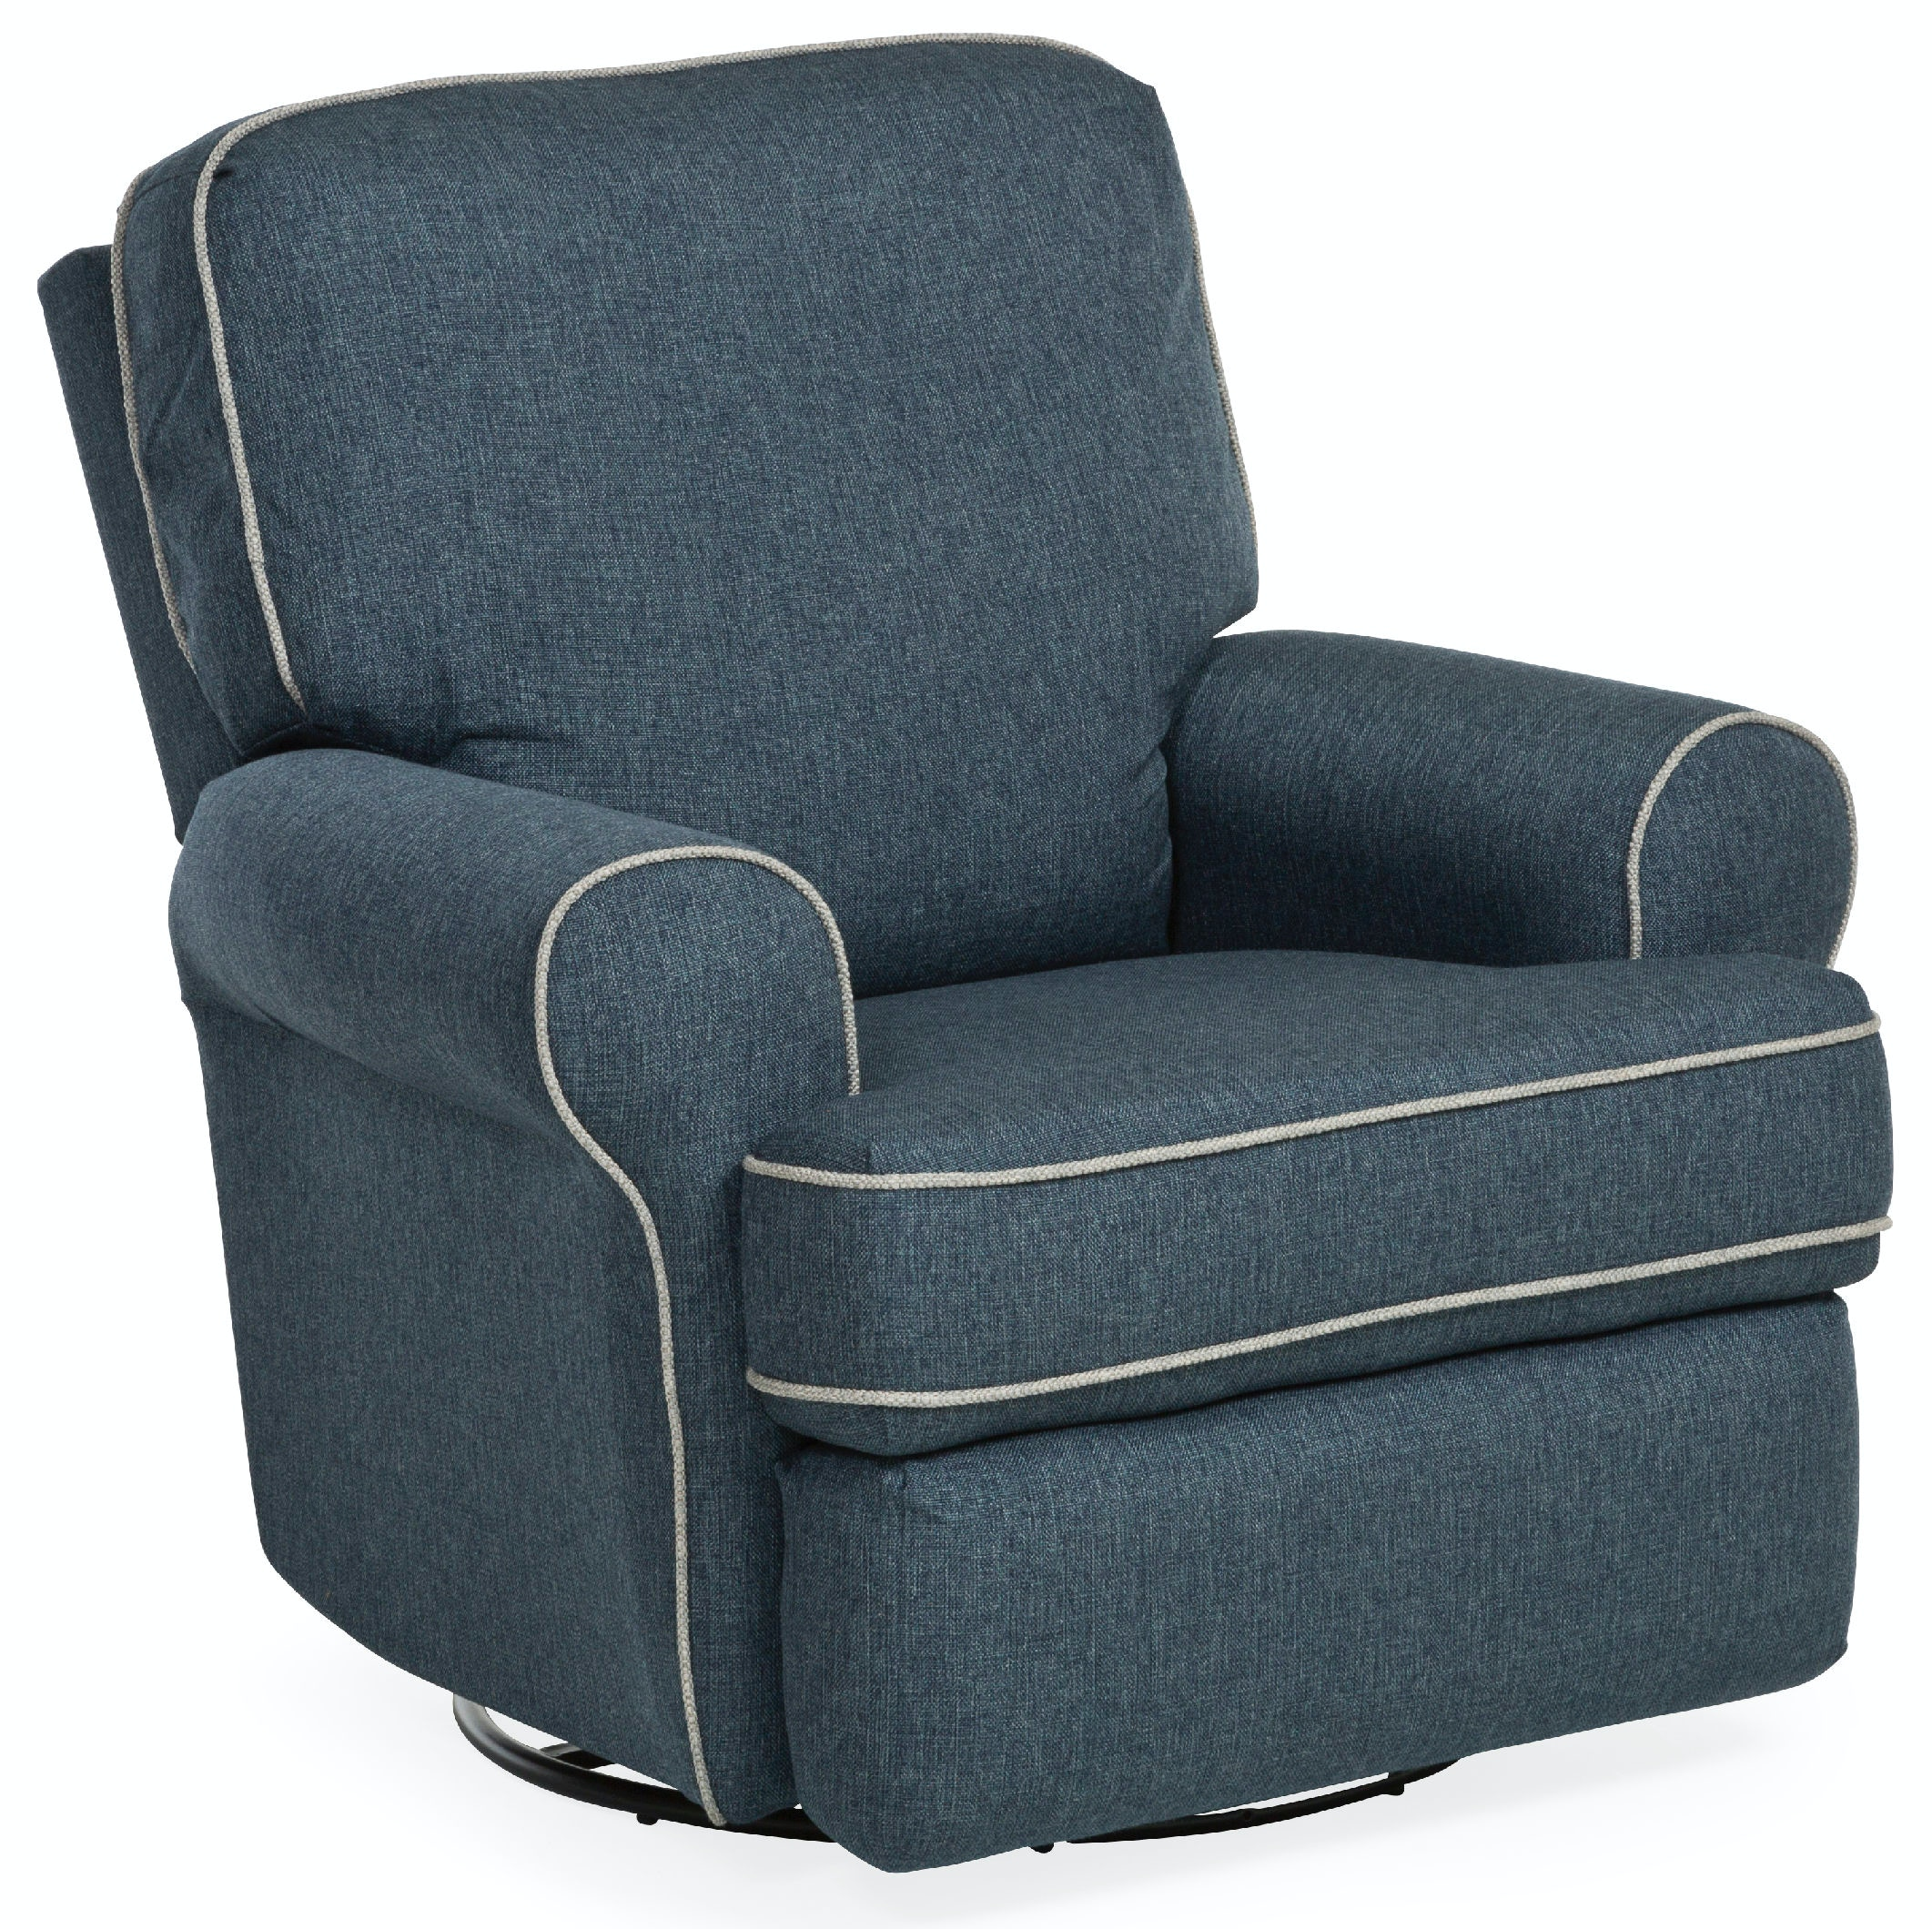 Tryp Swivel/Glider Recliner Chair ST:471298